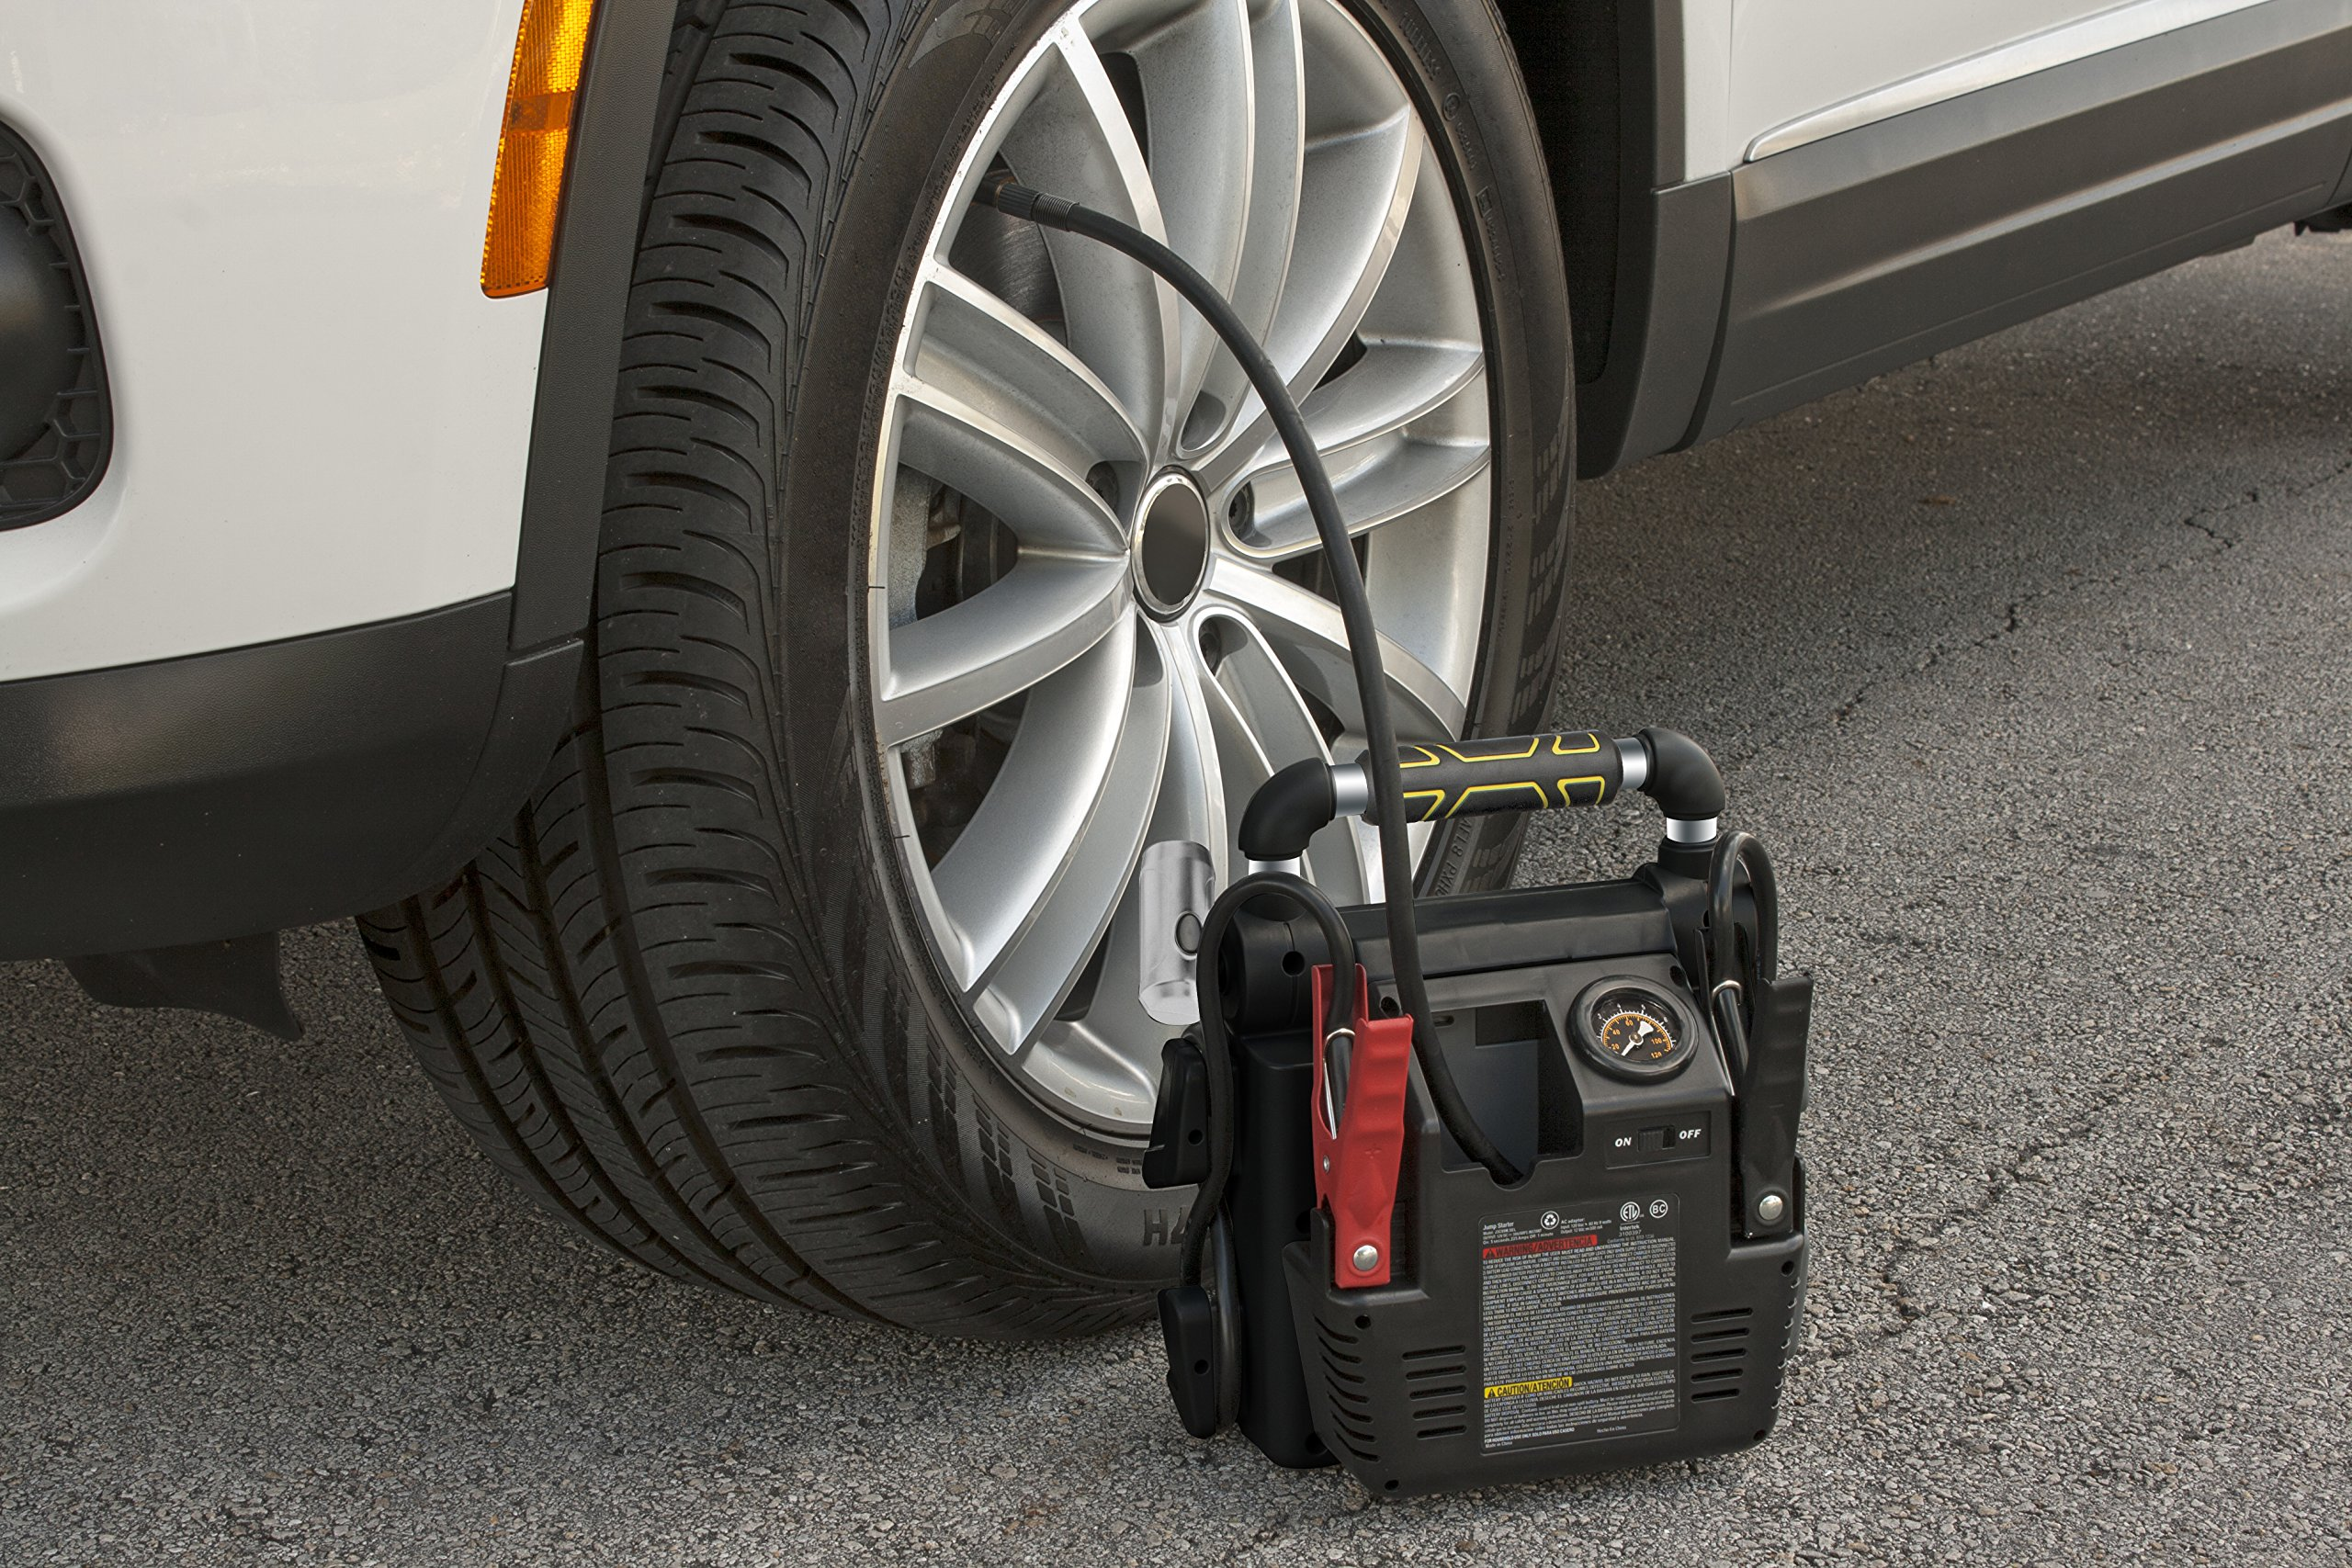 STANLEY J5C09 Power Station Jump Starter: 1000 Peak/500 Instant Amps, 120 PSI Air Compressor, Battery Clamps by STANLEY (Image #3)